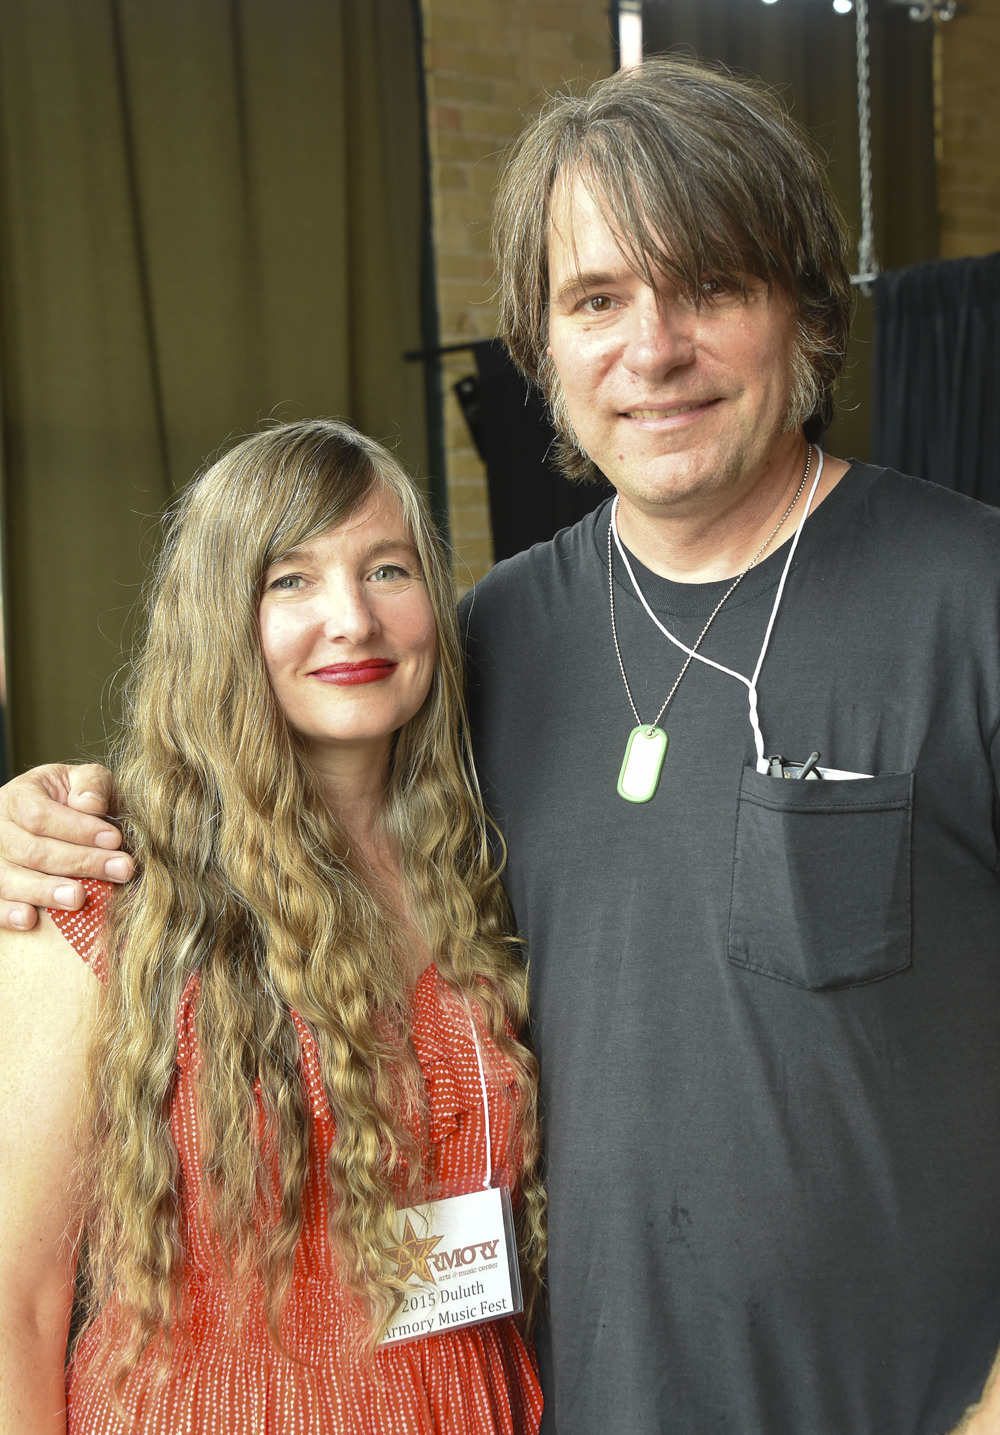 Germaine Gemberling and Rich Mattson / Clyde Iron Works / Duluth, Minnesota / September 6th, 2015 / Photo by Michael K. Anderson ( https://singingcanoe.smugmug.com/SmugPreview/Duluth-Armory-Music-Fest/51835601_4rxJSQ#!i=4335842517&k=mtrxFBV )